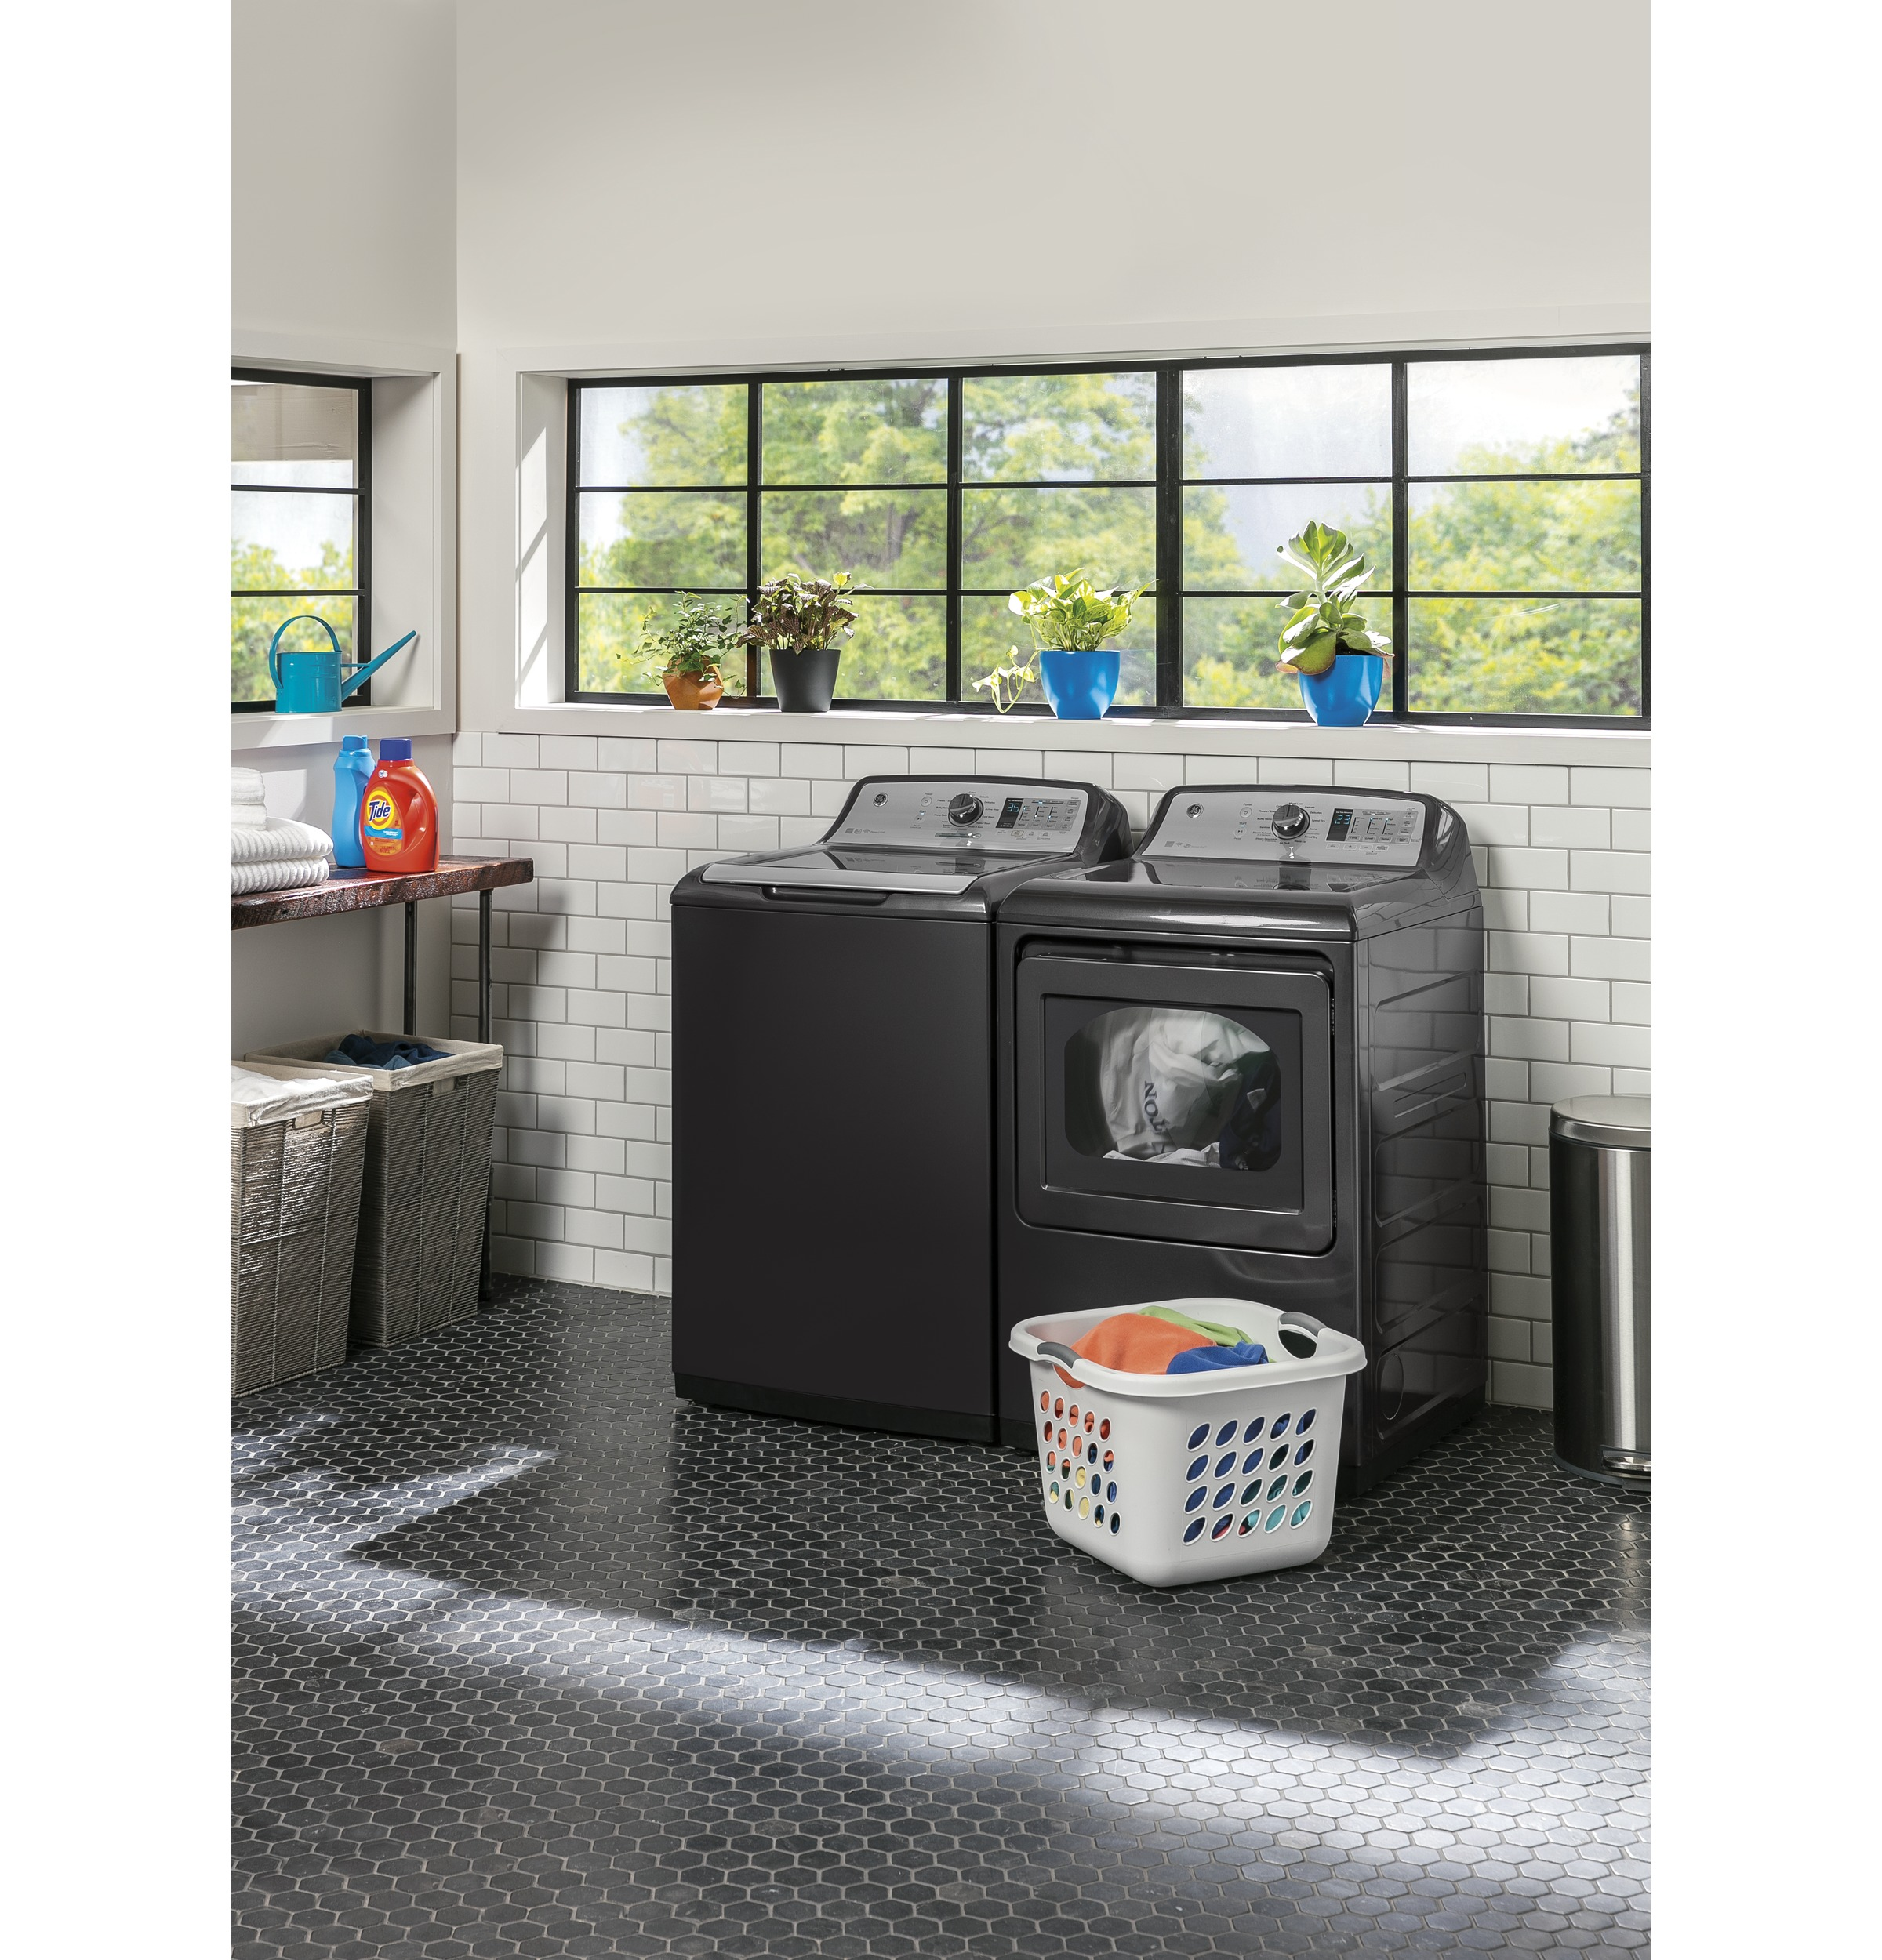 Model: GTW755CPMDG | GE GE® 4.9  cu. ft. Capacity  Washer with Stainless Steel Basket